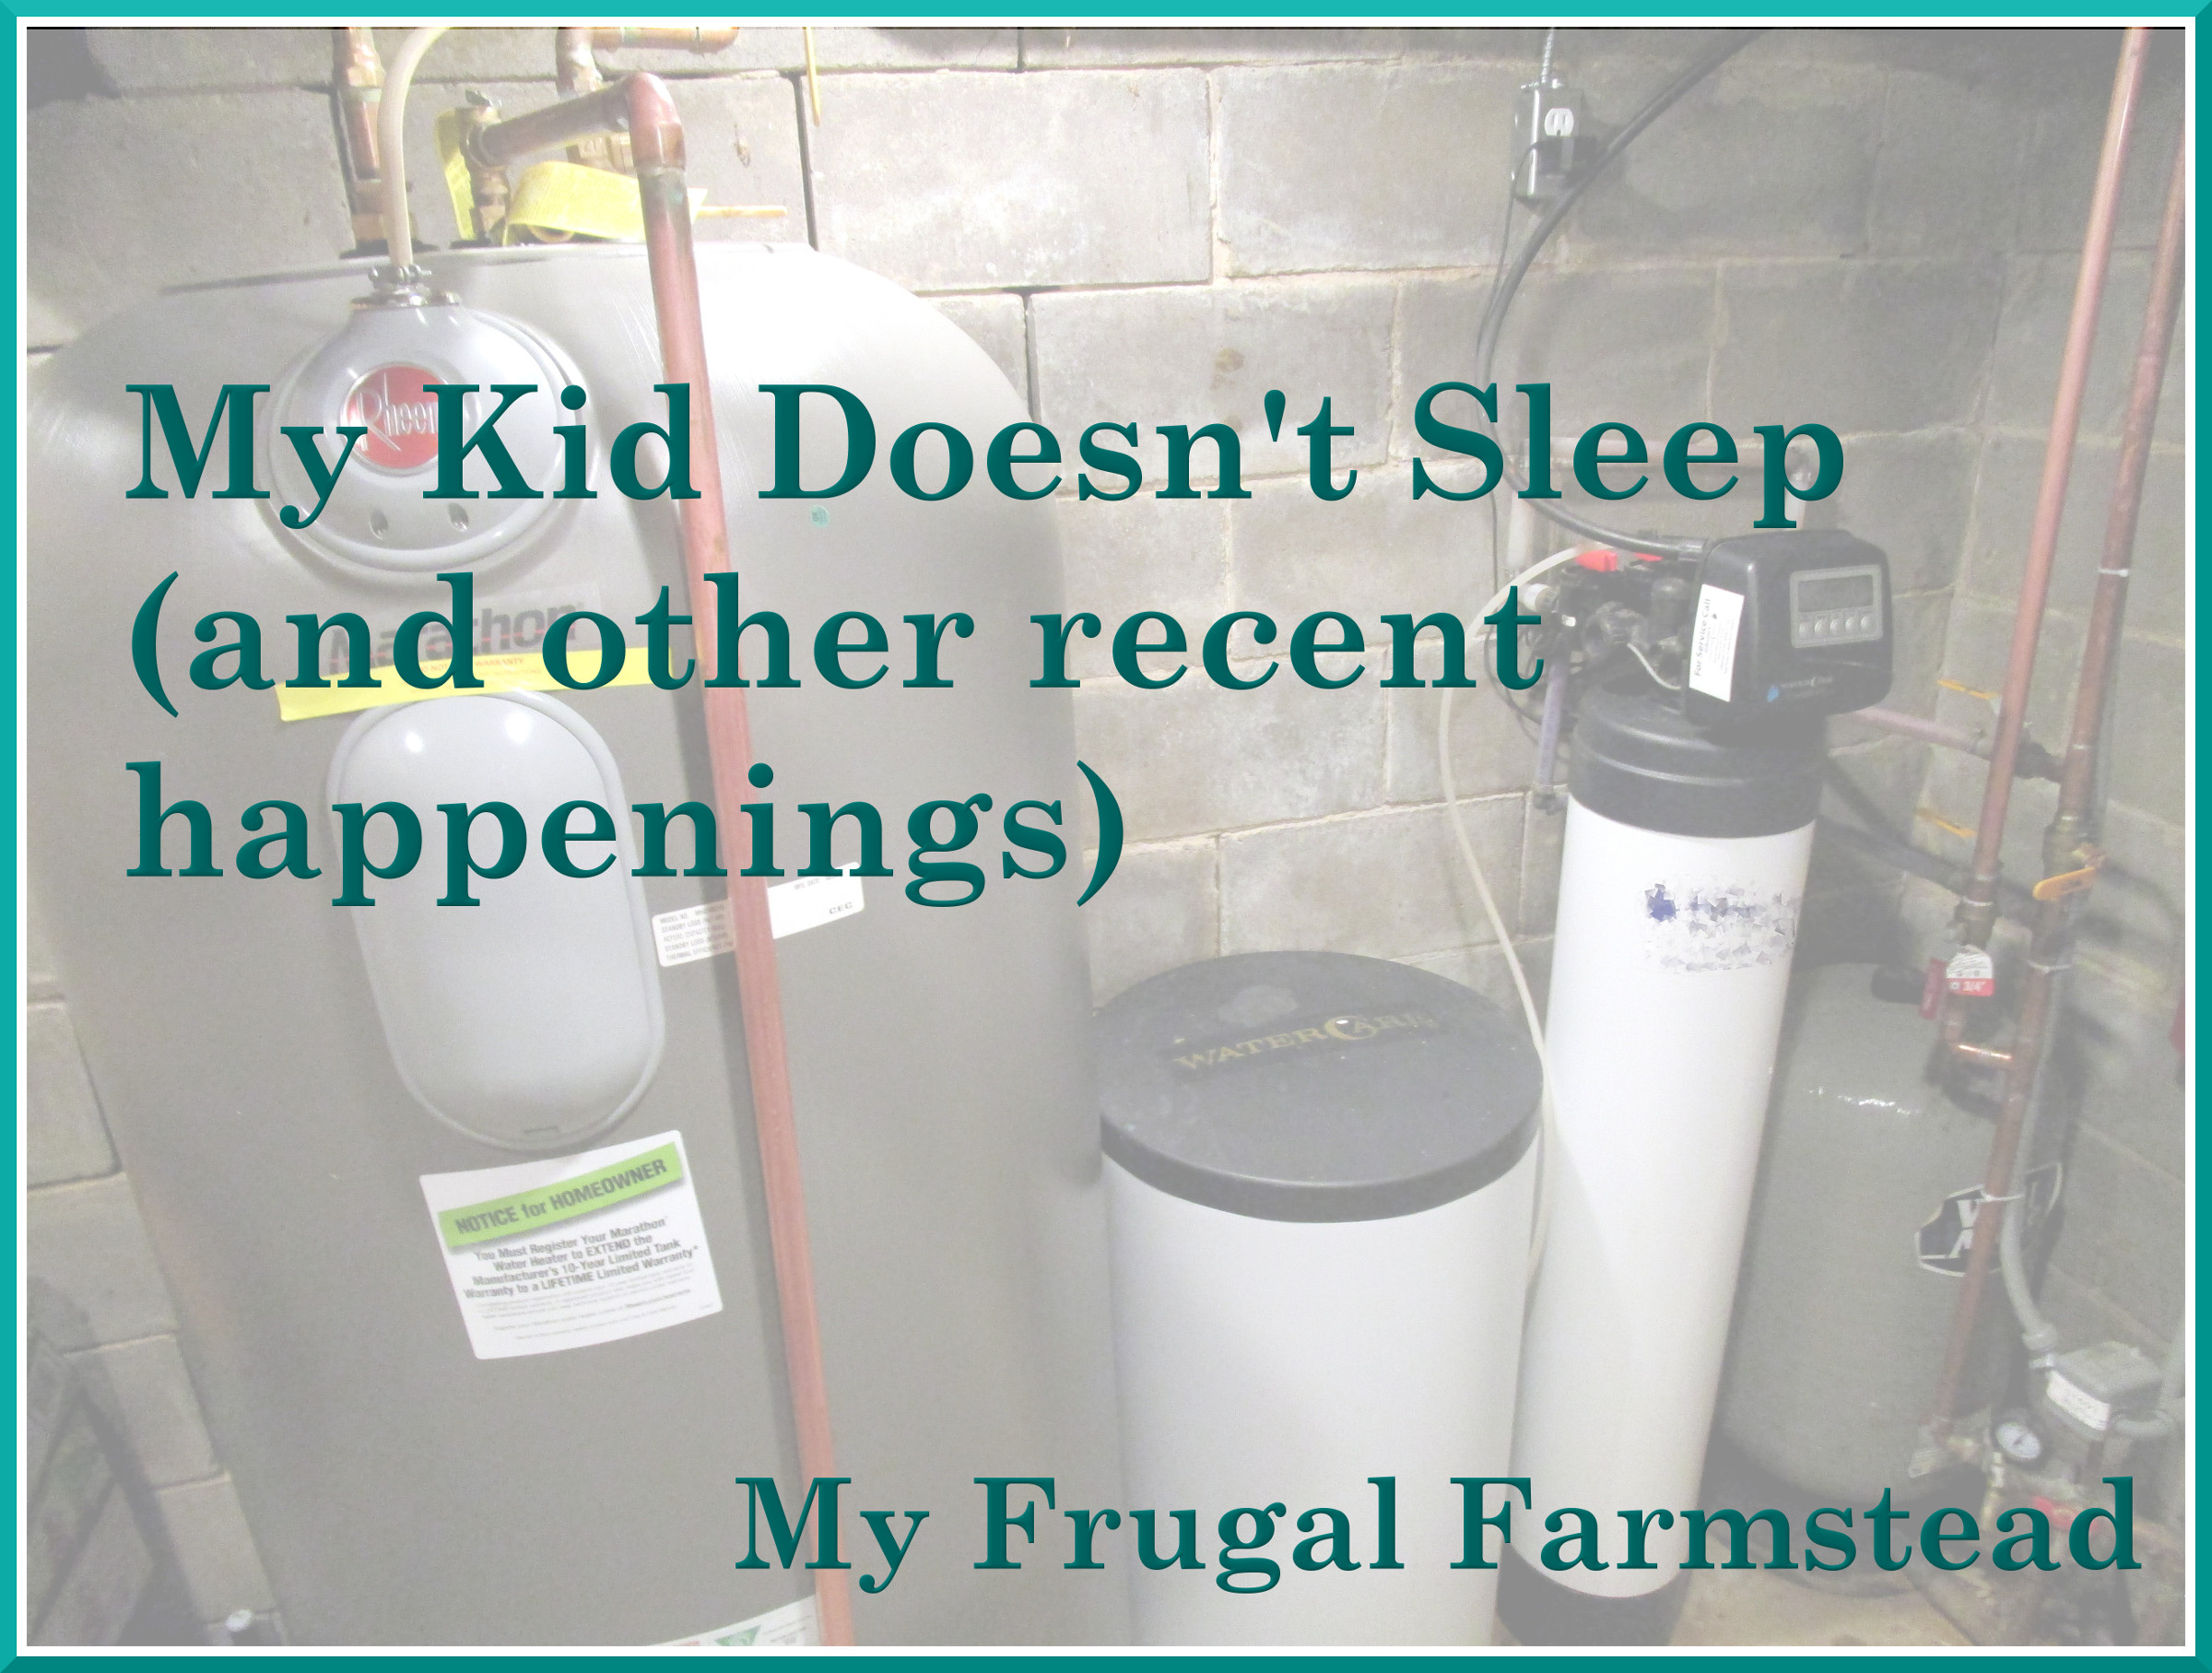 My Kid Doesn't Sleep (and other recent happenings)